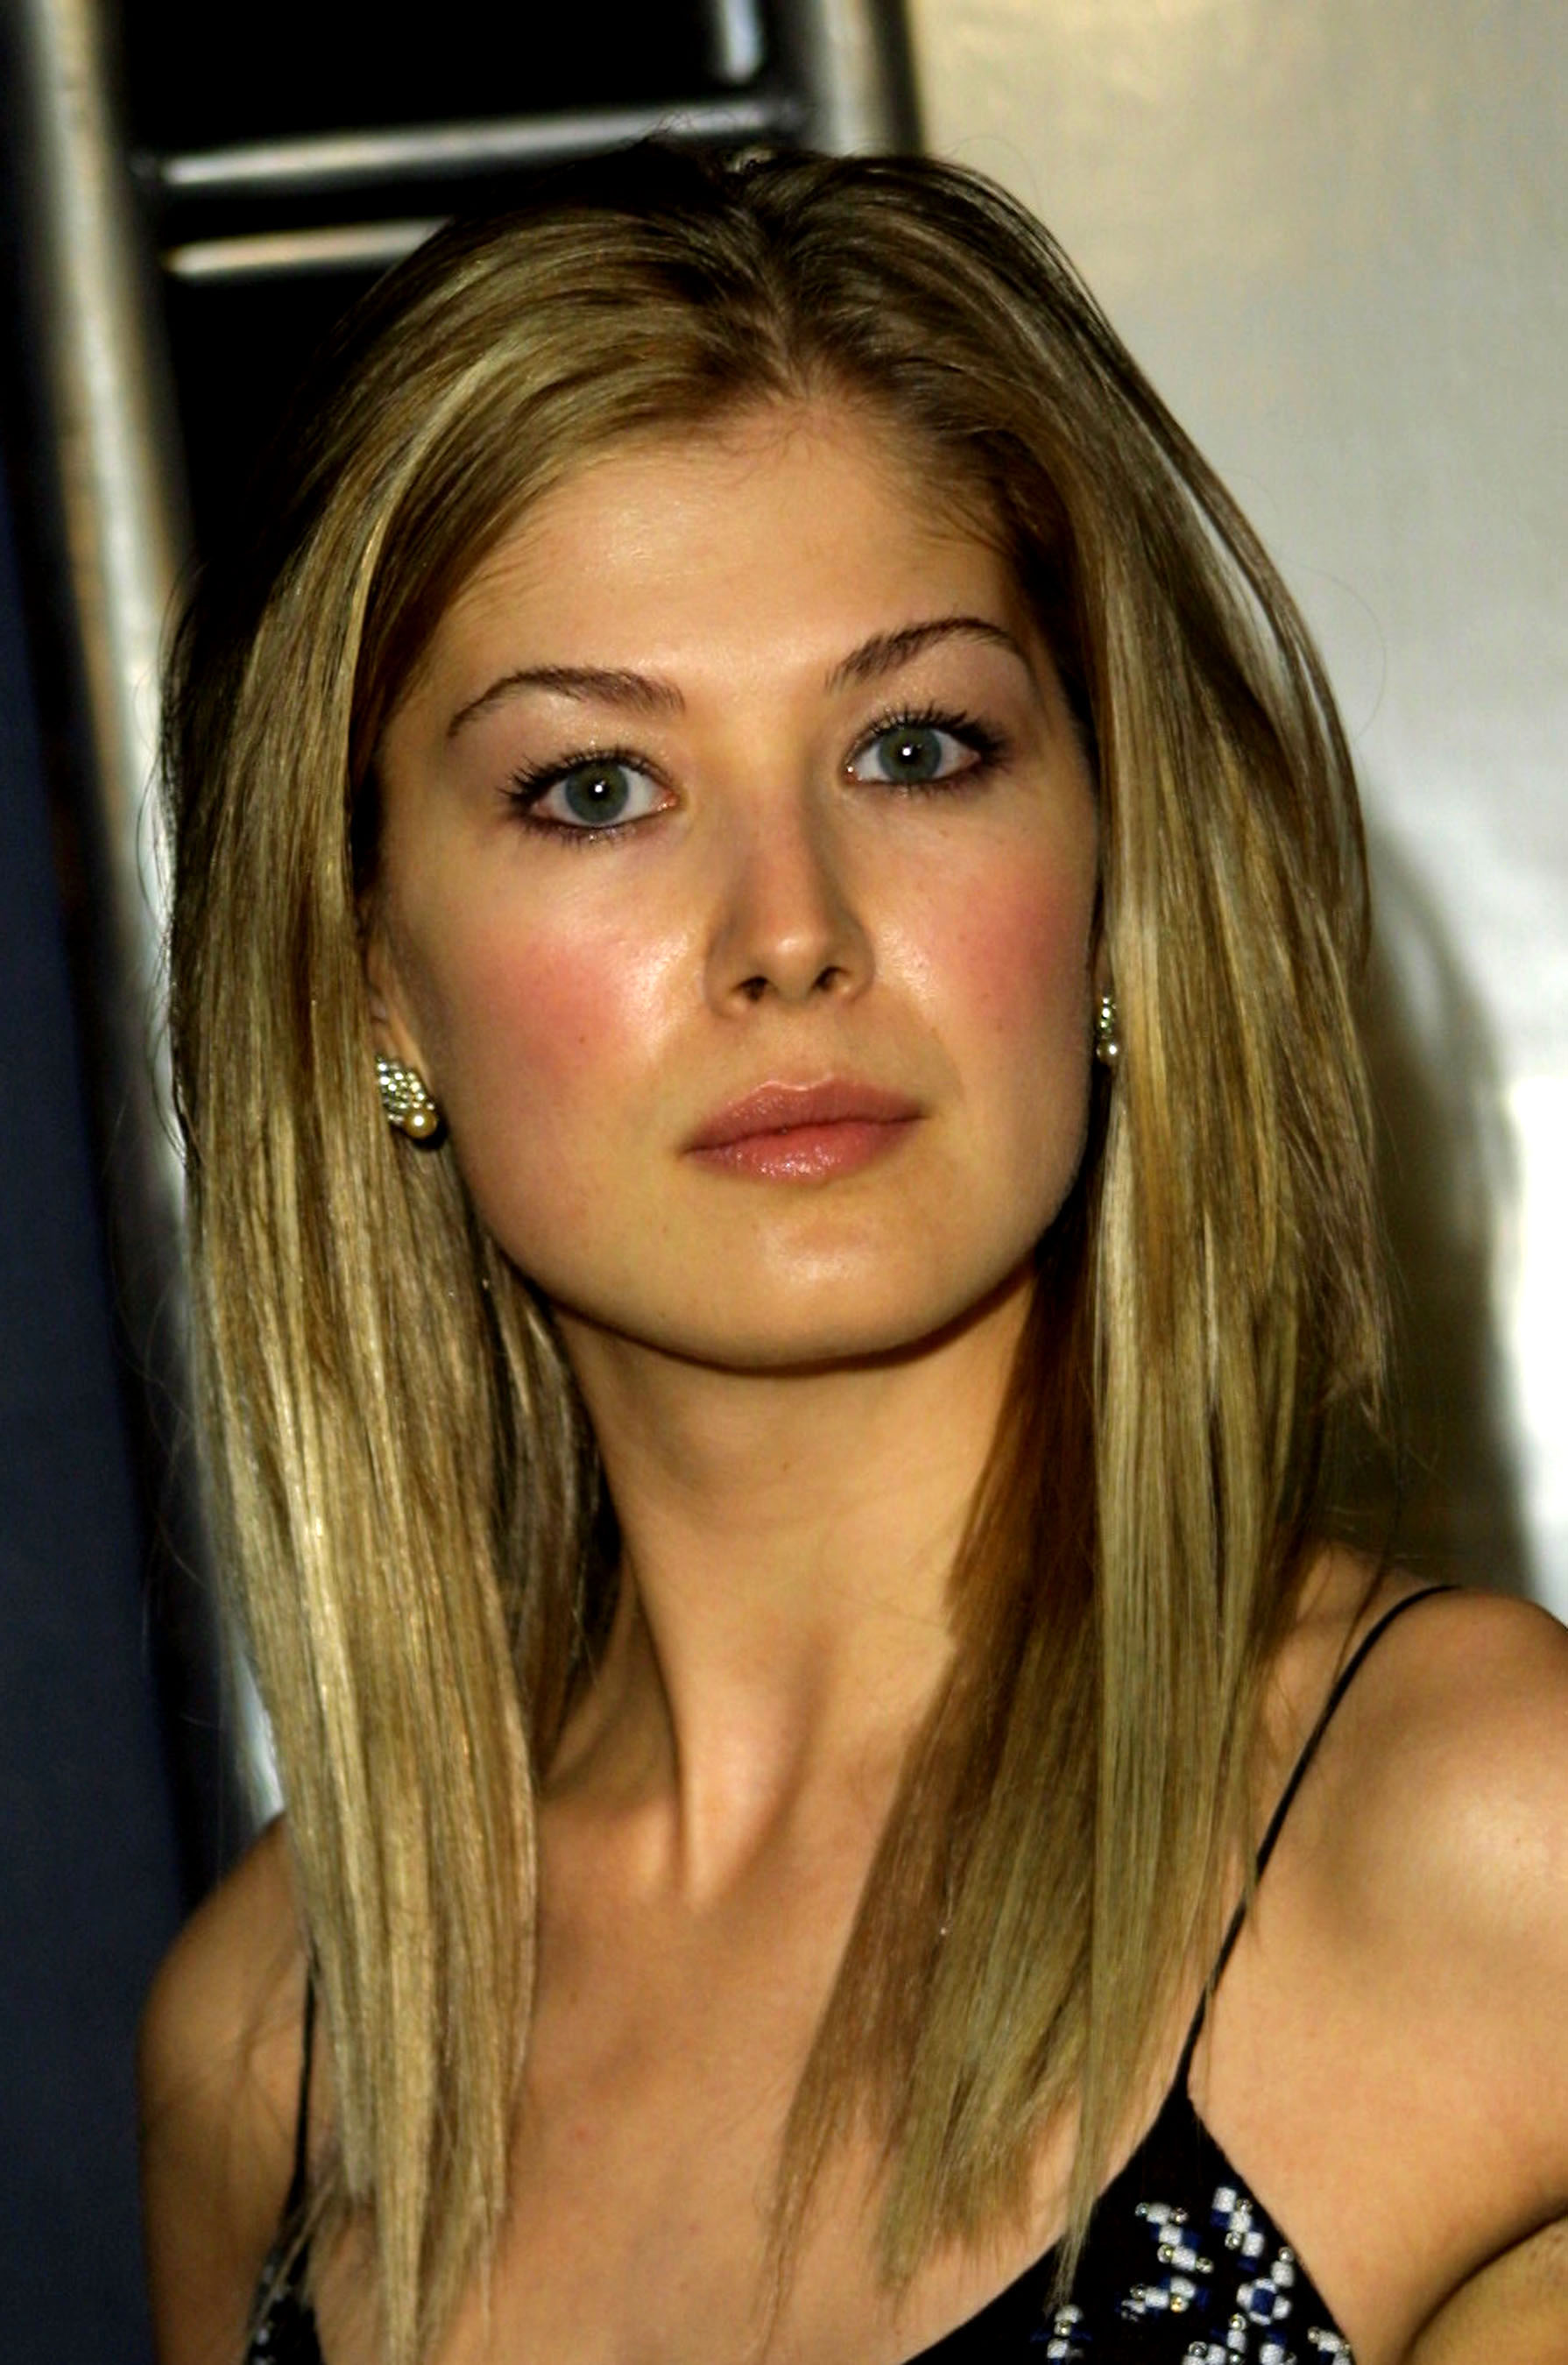 Cleavage Rosamund Pike nude (42 photo), Topless, Fappening, Instagram, legs 2015